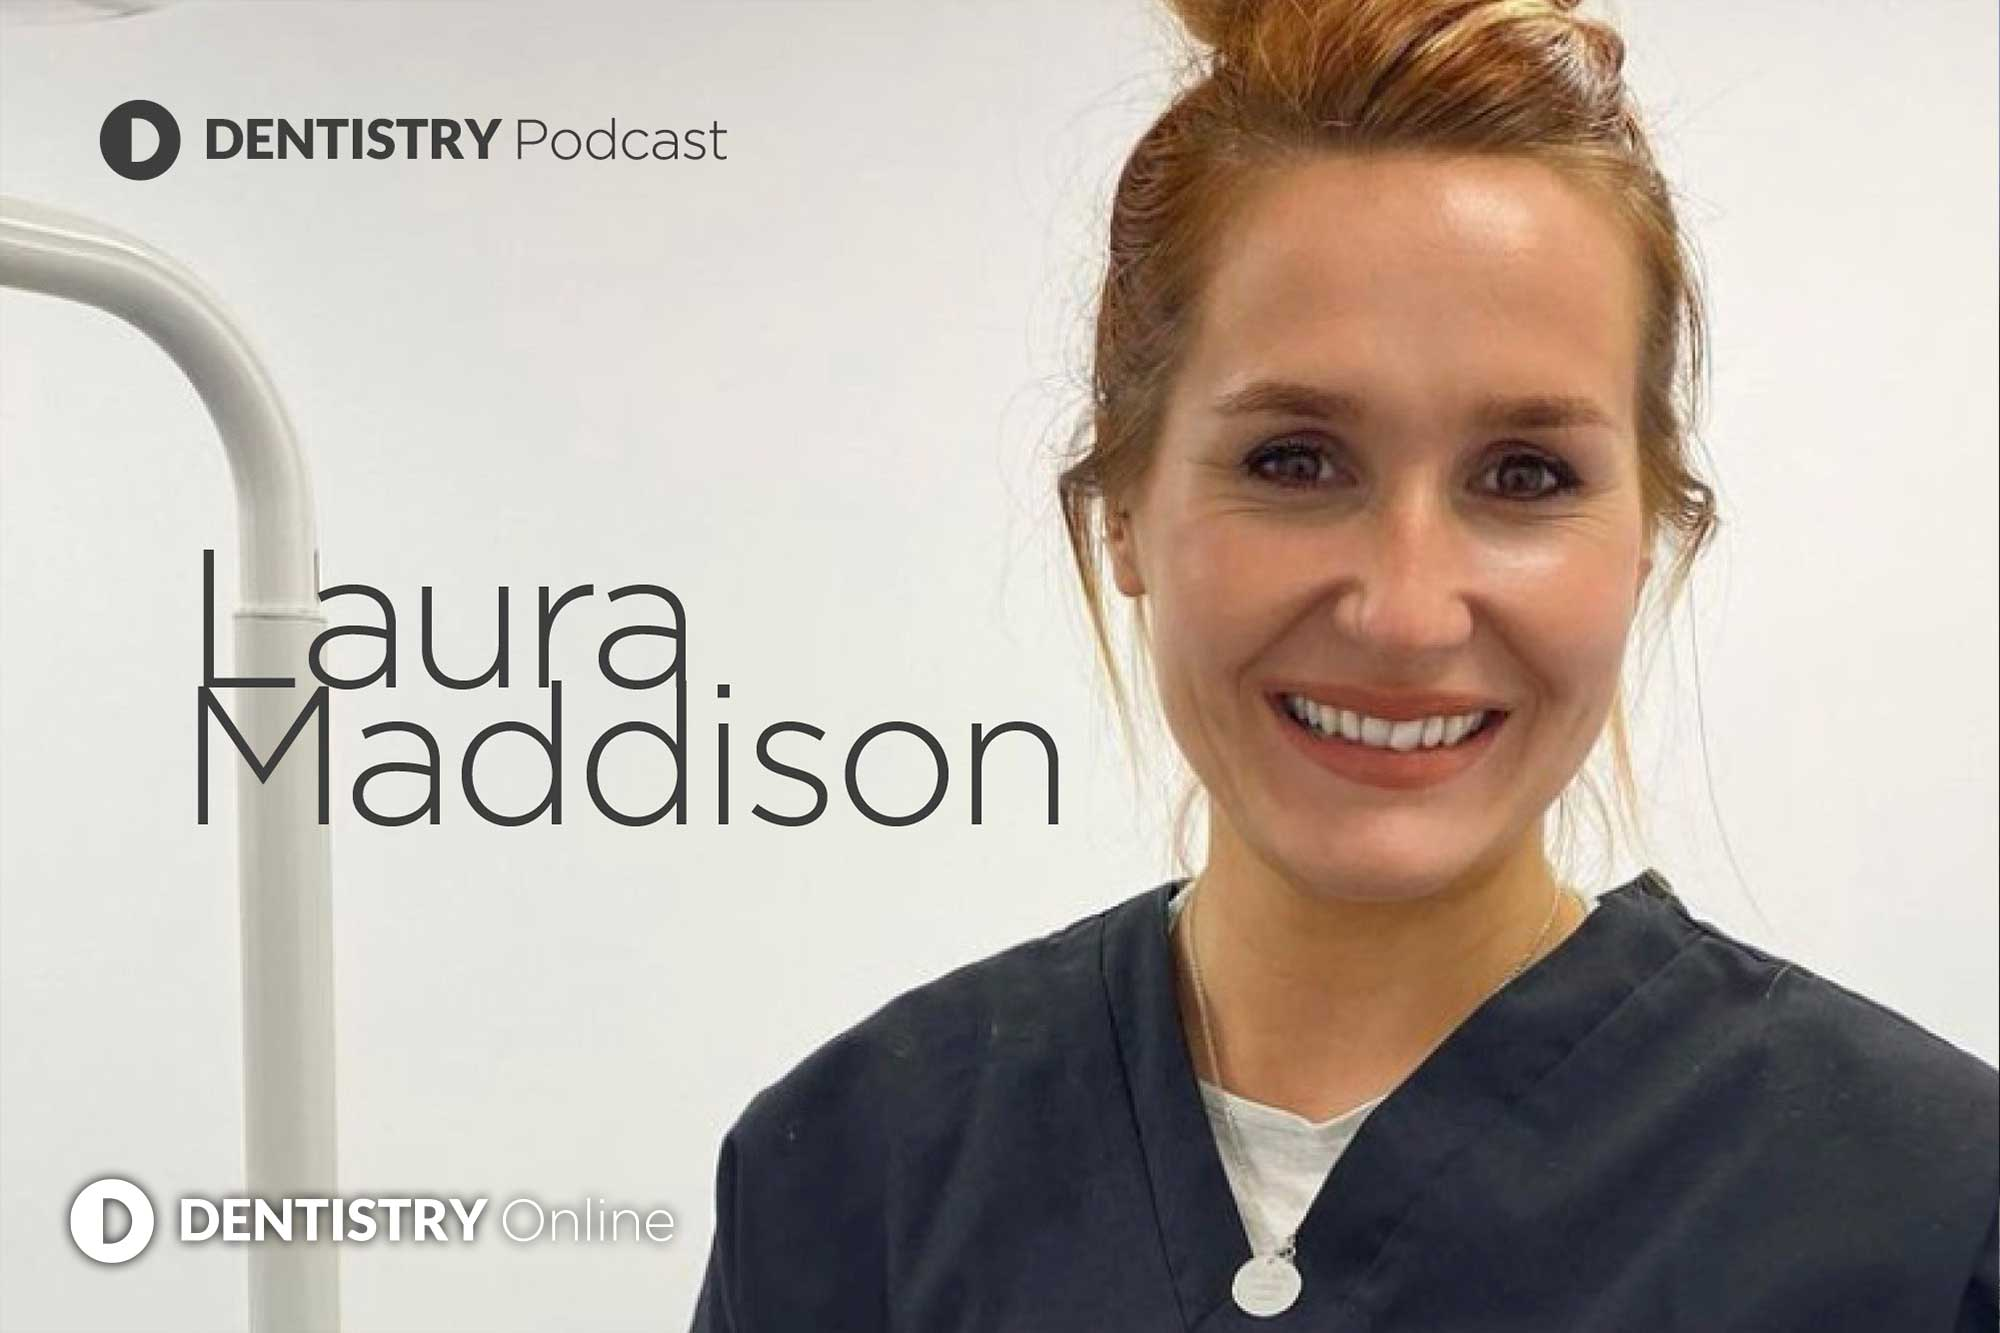 We chat to Laura Maddison about her unique journey from dental nurse to dentist – and what both roles have taught her about dentistry